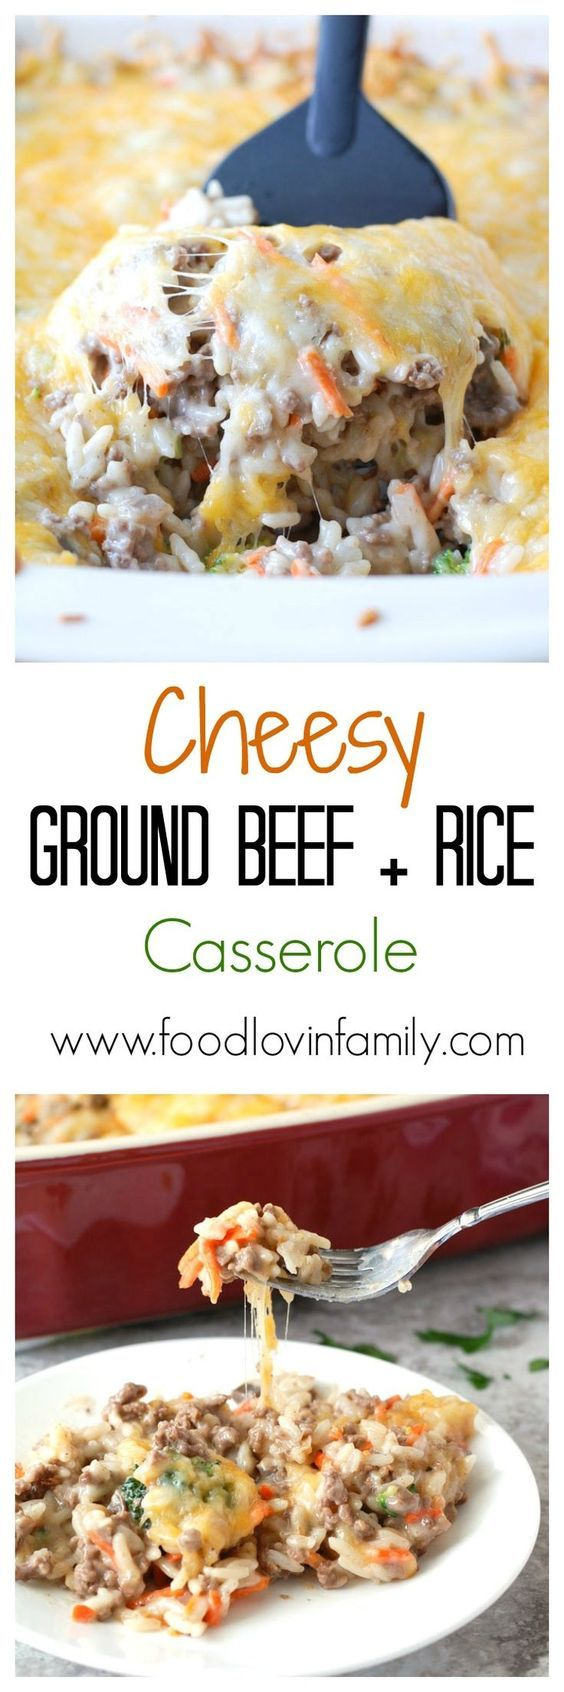 Filled with cheese, ground beef, carrots, broccoli and rice, this cheesy ground beef and rice casserole is a simple, delicious meal great for the whole family. @UncleBens #BensBeginners #UncleBensPromo #ad | http://www.foodlovinfamily.com/cheesy-ground-beef-and-rice-casserole/